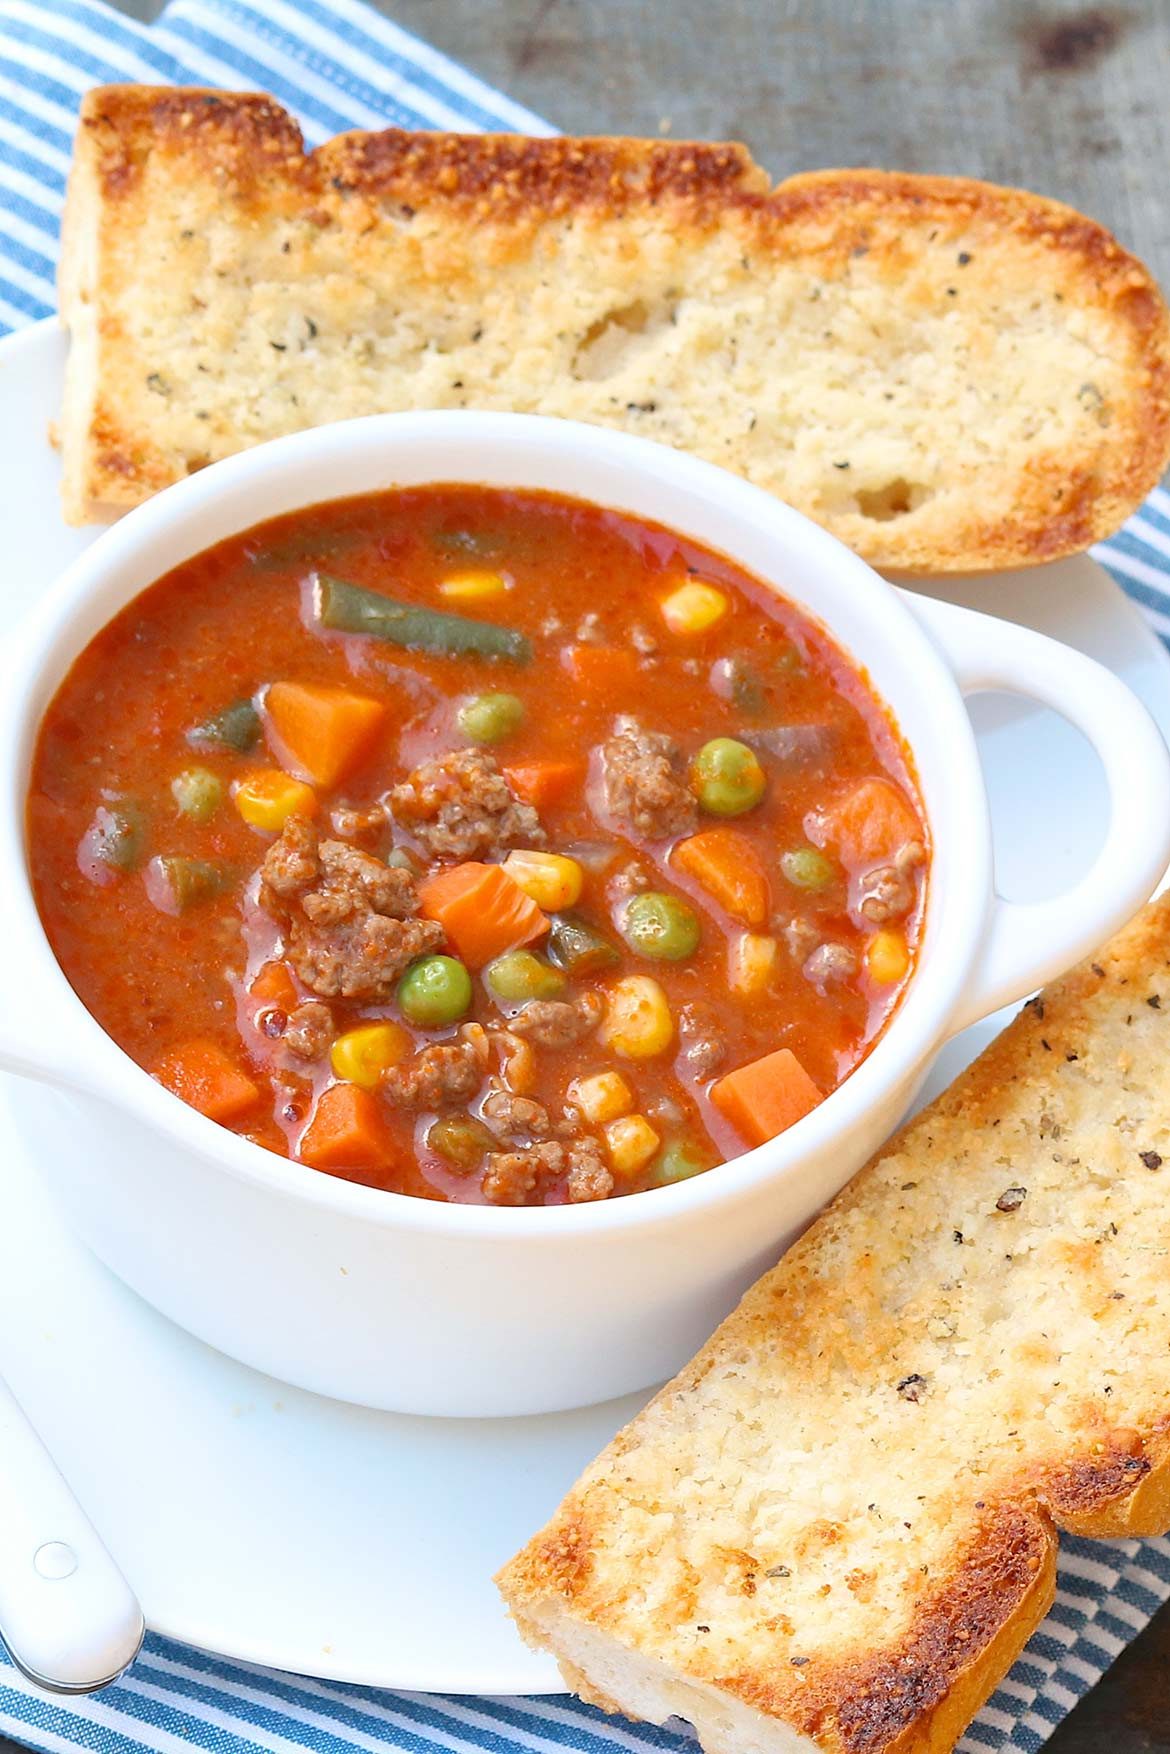 All Of The Ings Are Freezer Or Pantry Staples Making This A Convenient Meal To Have On Standby Canned Tomato Soup Is One Shortcuts Bag